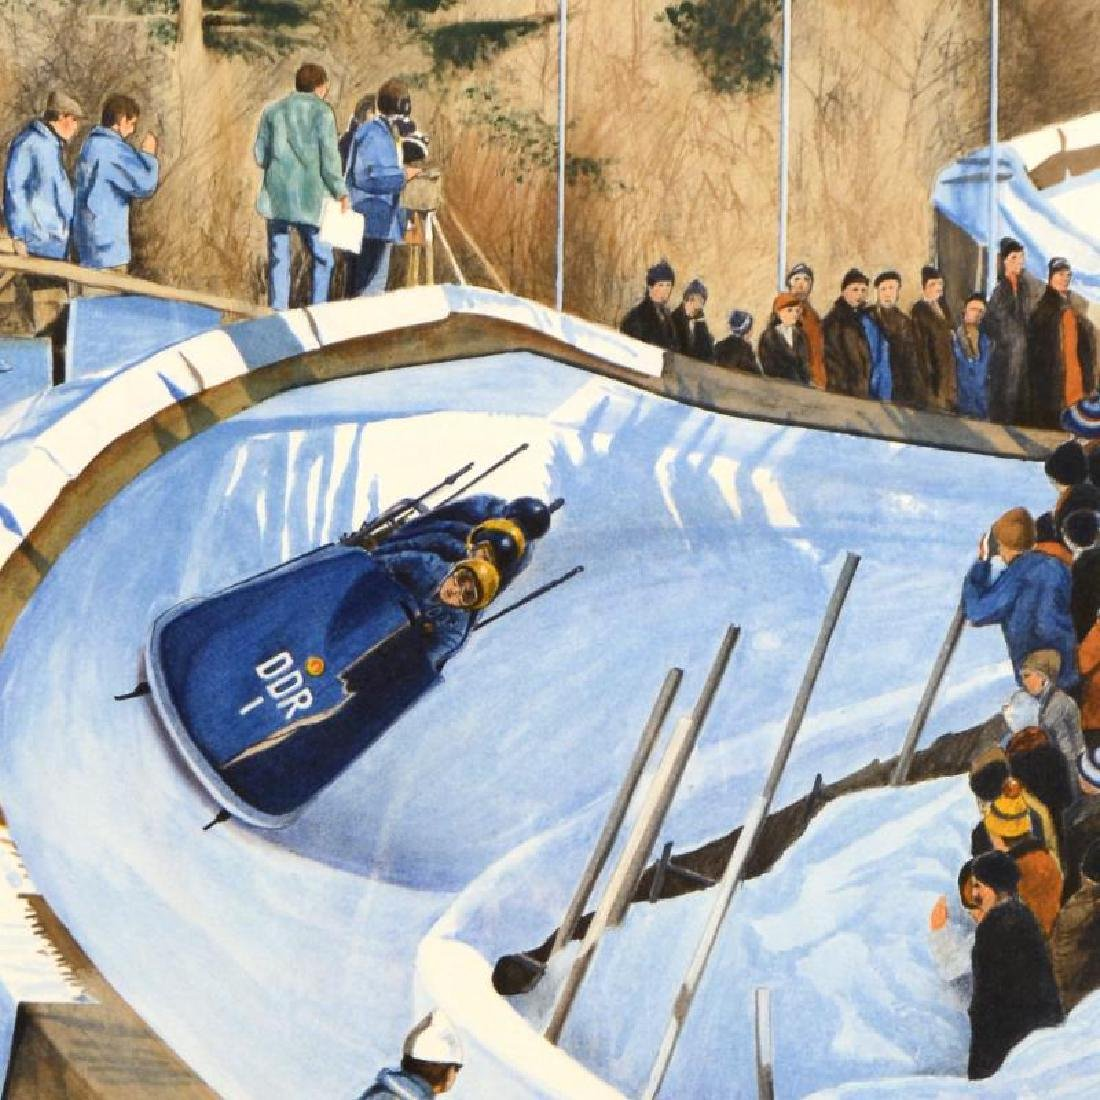 4-Man Bobsled - 1976 by Nelson, William - 2